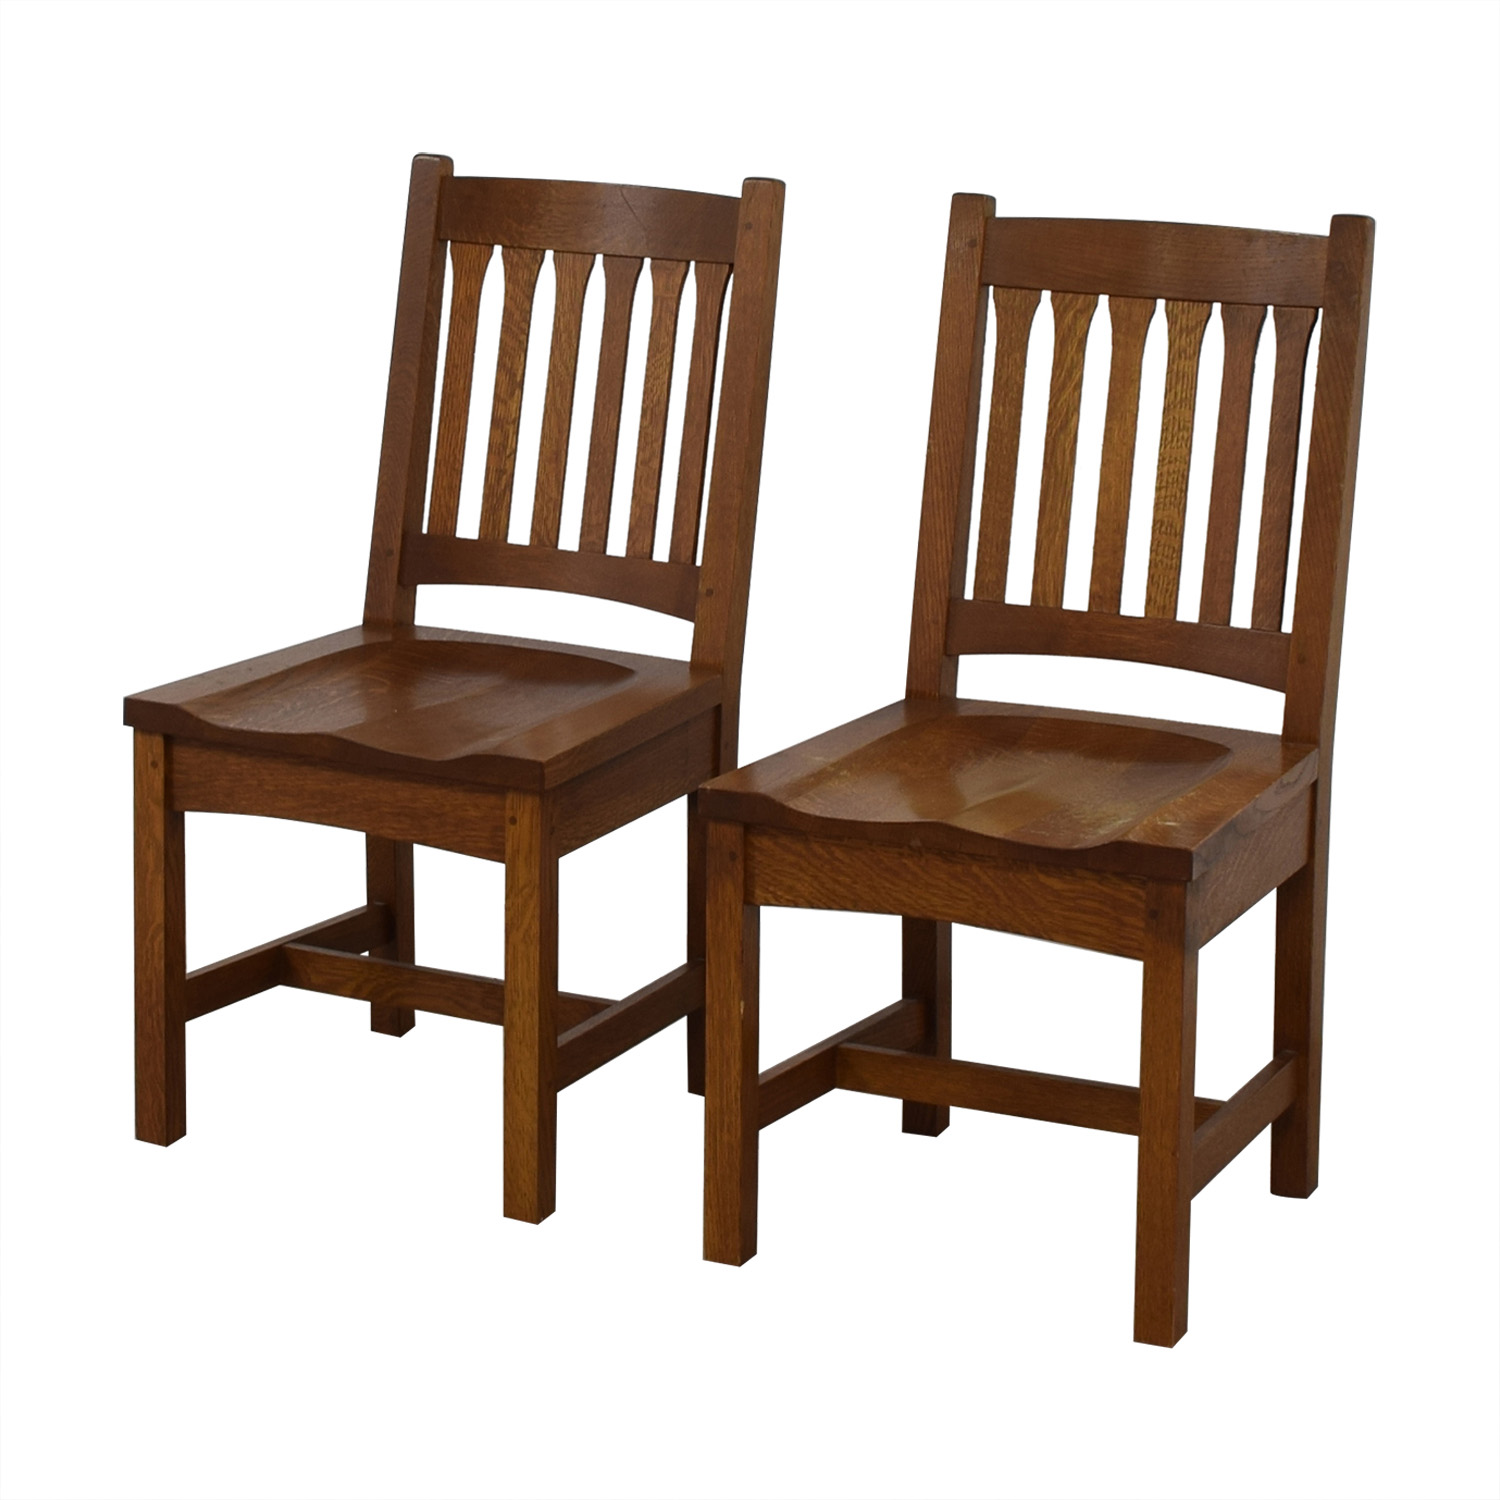 buy Stickley Audi & Co Handcrafted Wooden Chairs Stickley Audi & Co Dining Chairs